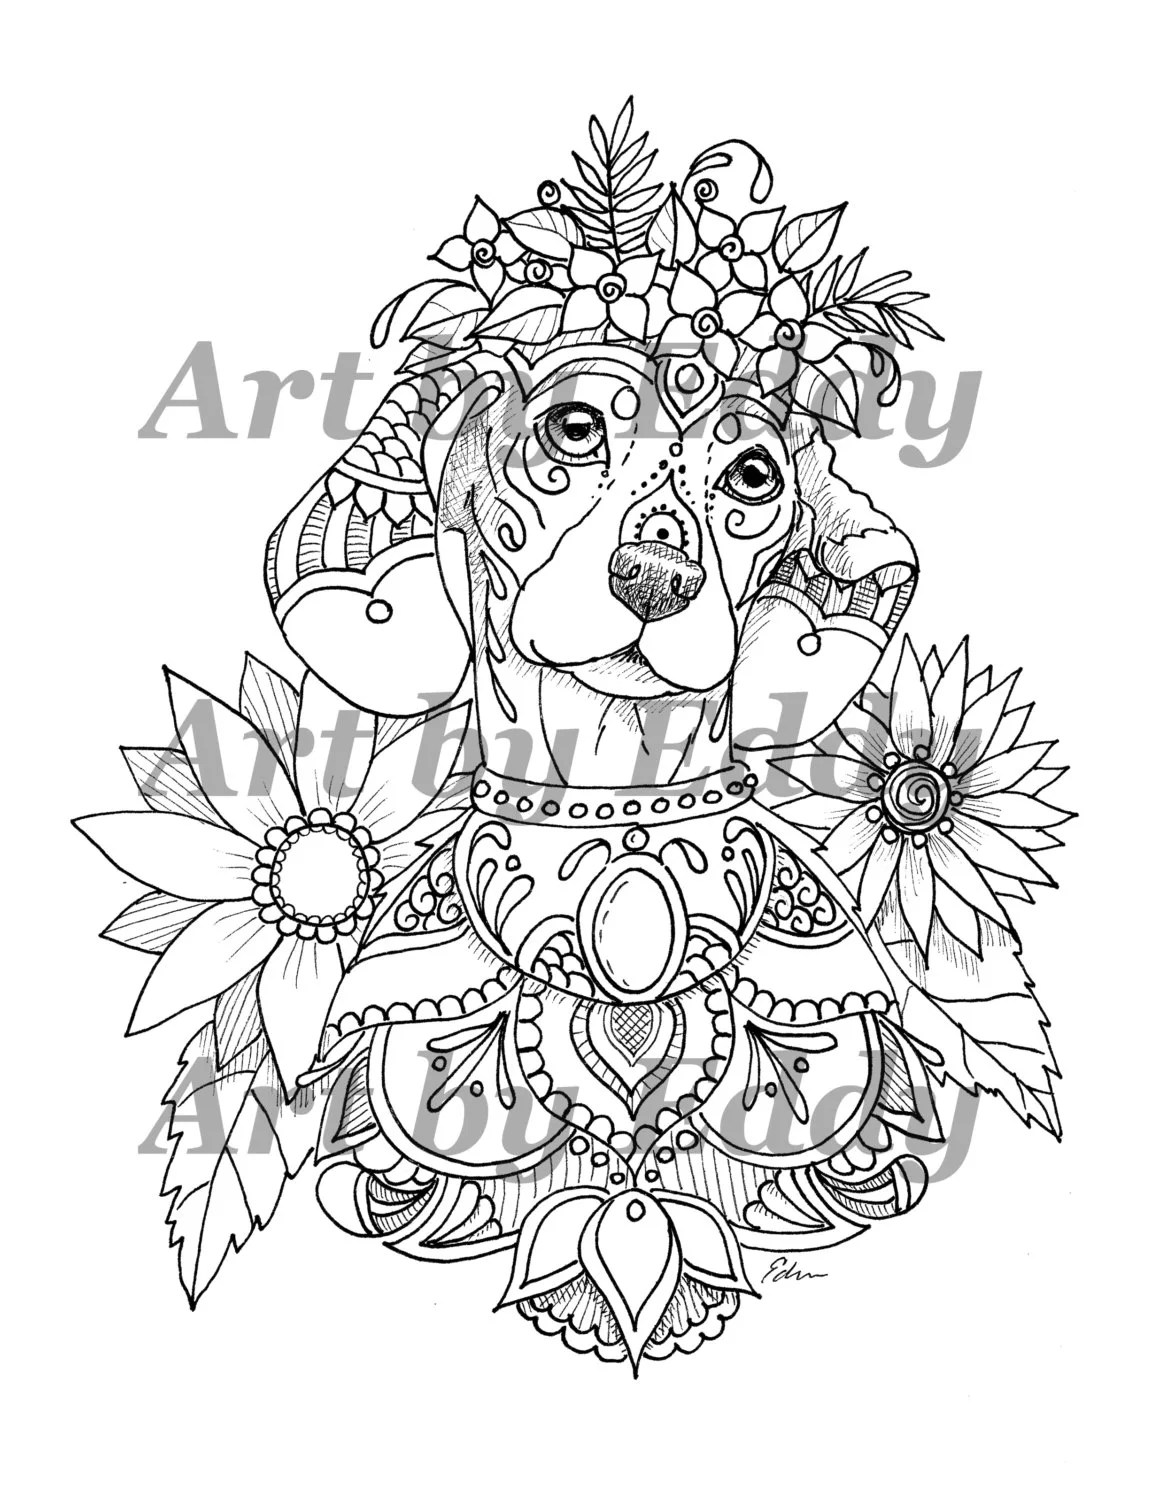 This Coloring Page Consists Of 1 Hand Drawn Image Of A